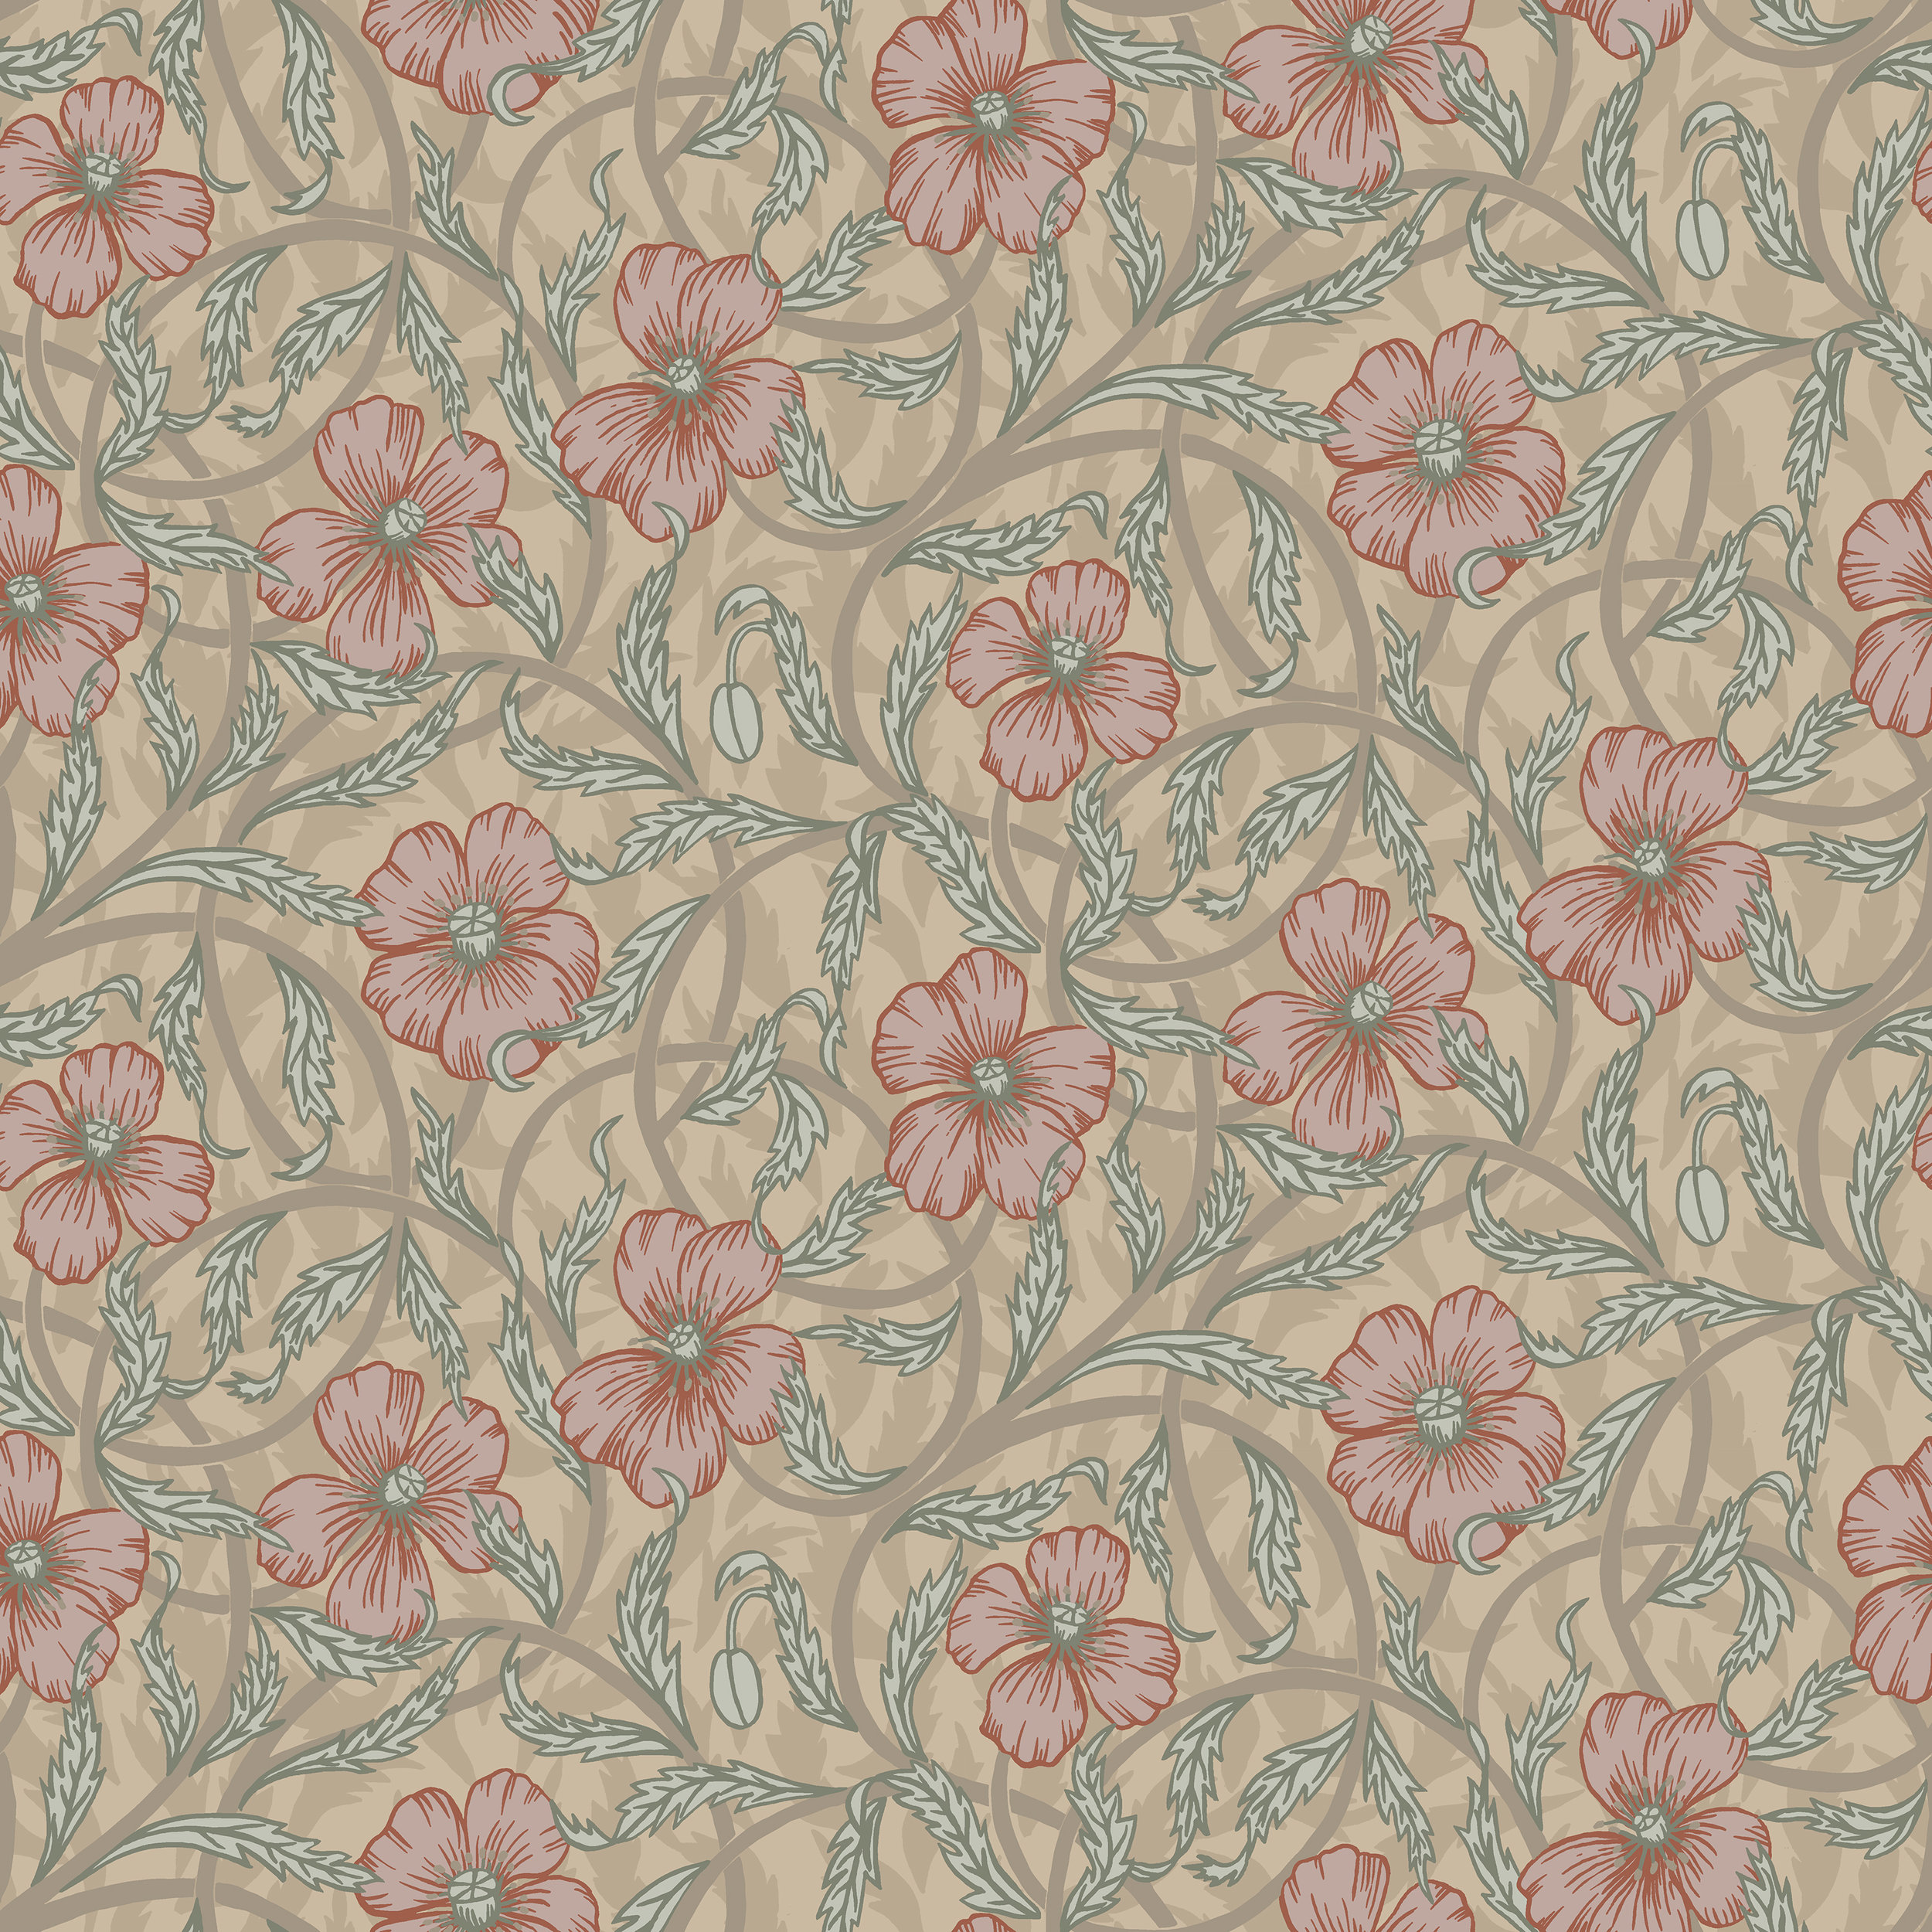 Poppy 28026 Midbec Wallpaper